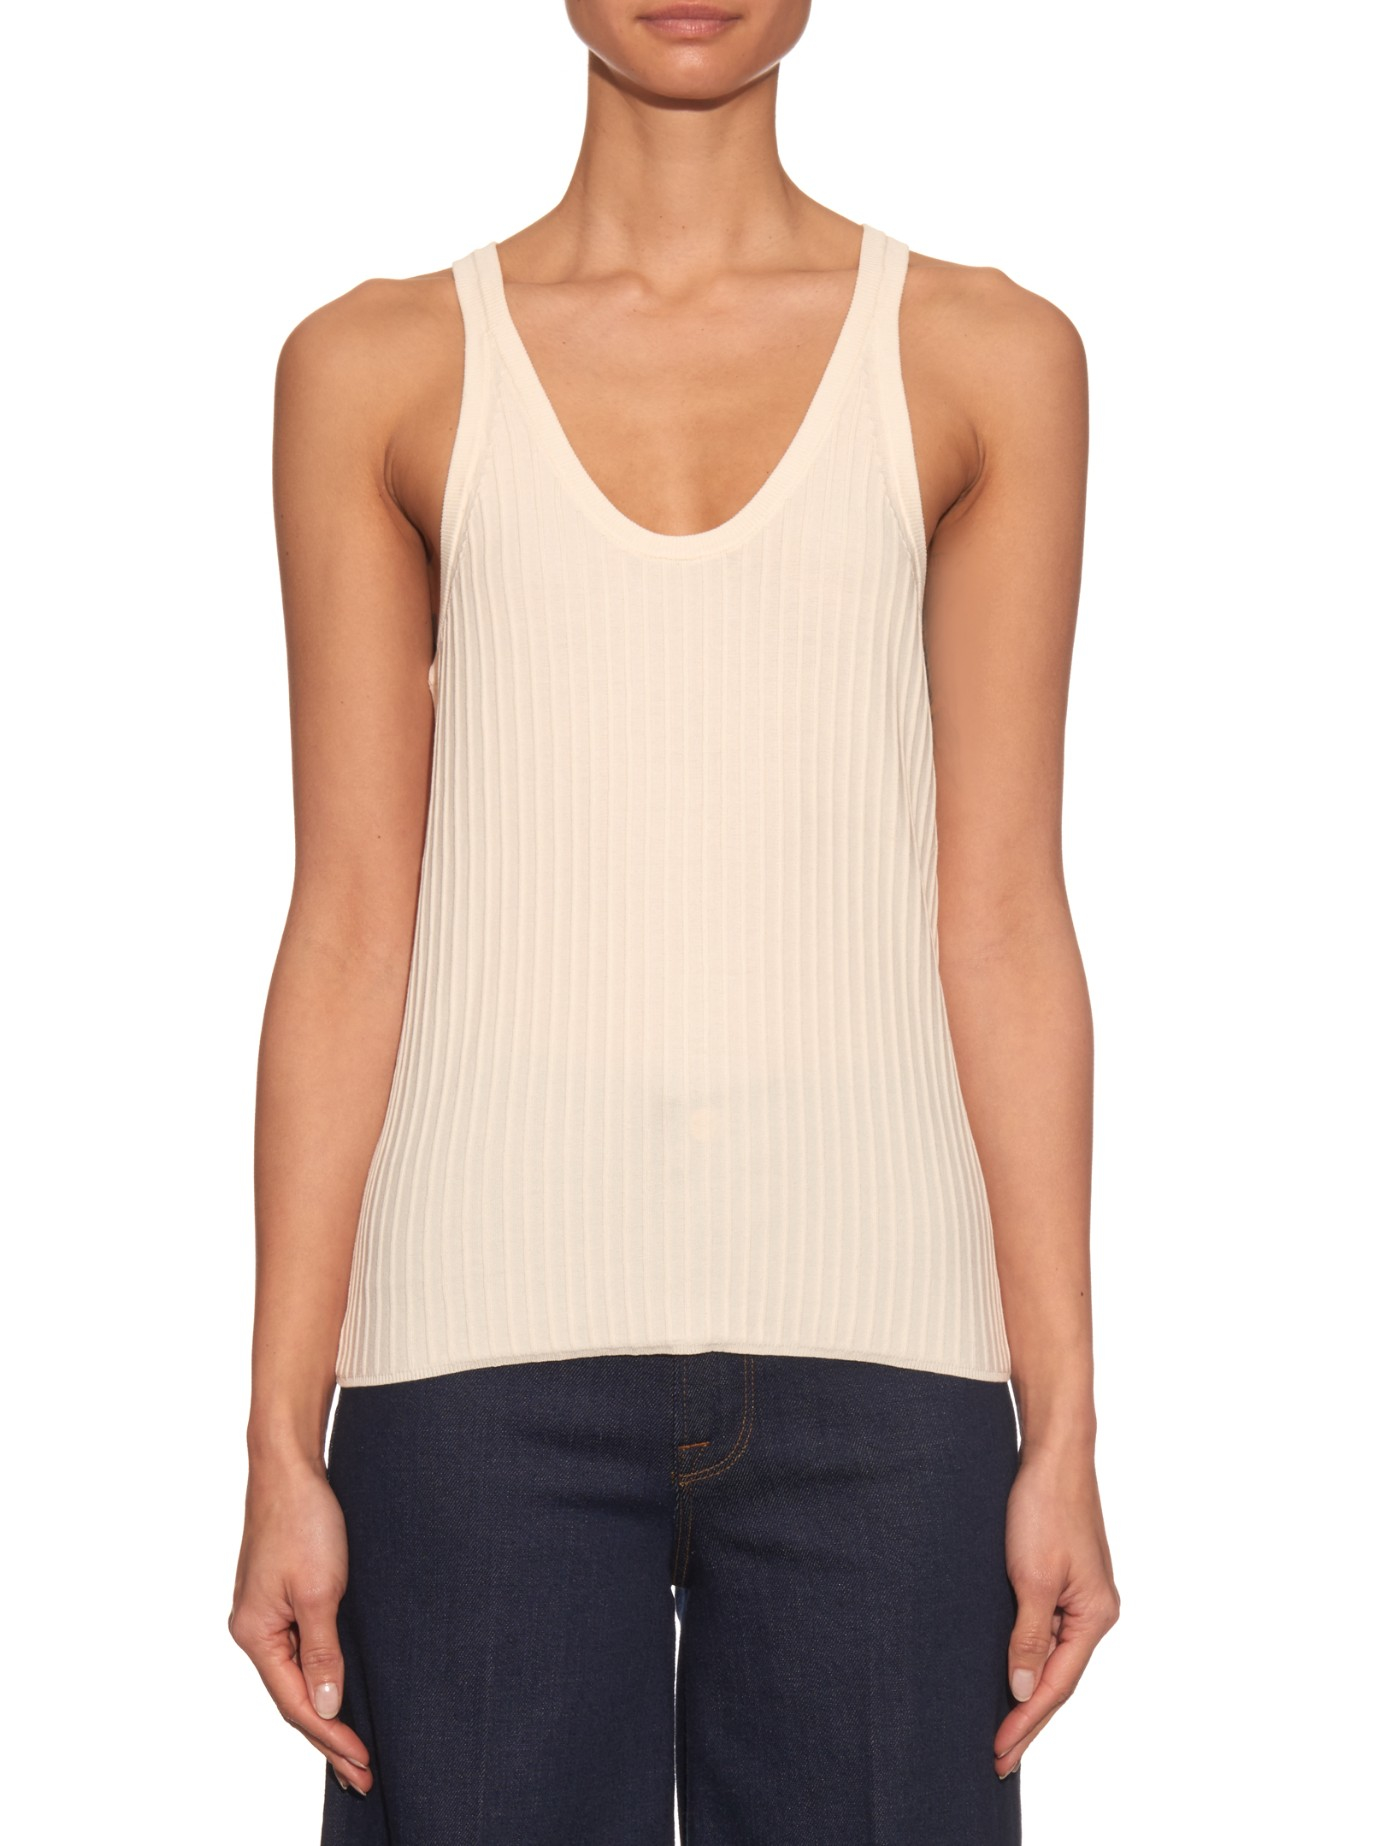 Find great deals on eBay for ribbed tank tops. Shop with confidence. Skip to main content. eBay: Womens Racerback Ribbed Tank Tops Cotton Sleeveless Top Stretch Fitness Sports. Brand New · Zenana Outfitters. $ INC Size Small White Ribbed Tank Top Beaded Detailing.